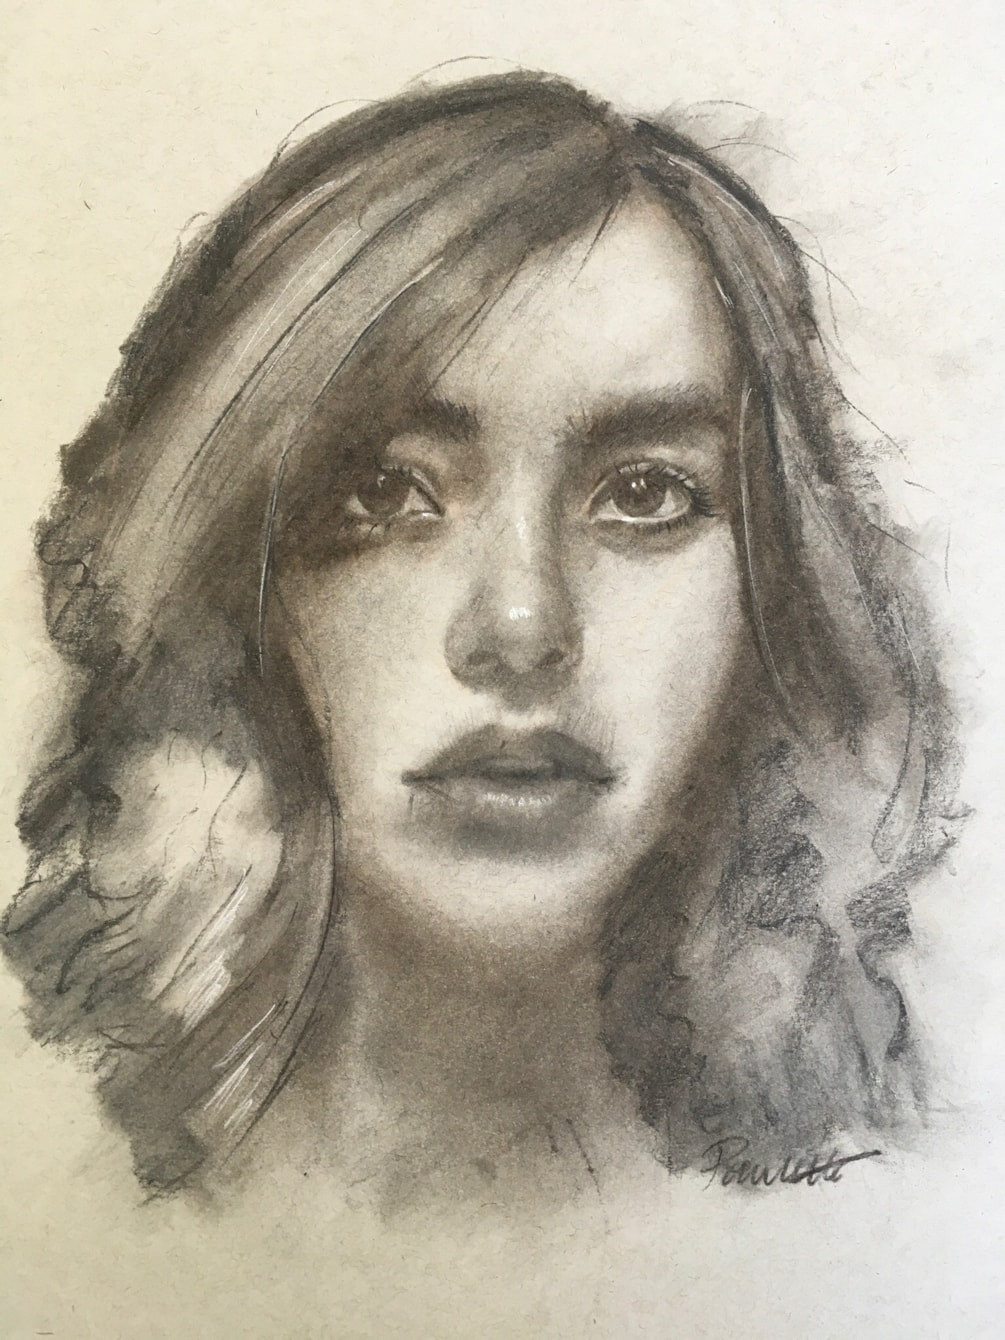 And some more portrait practise